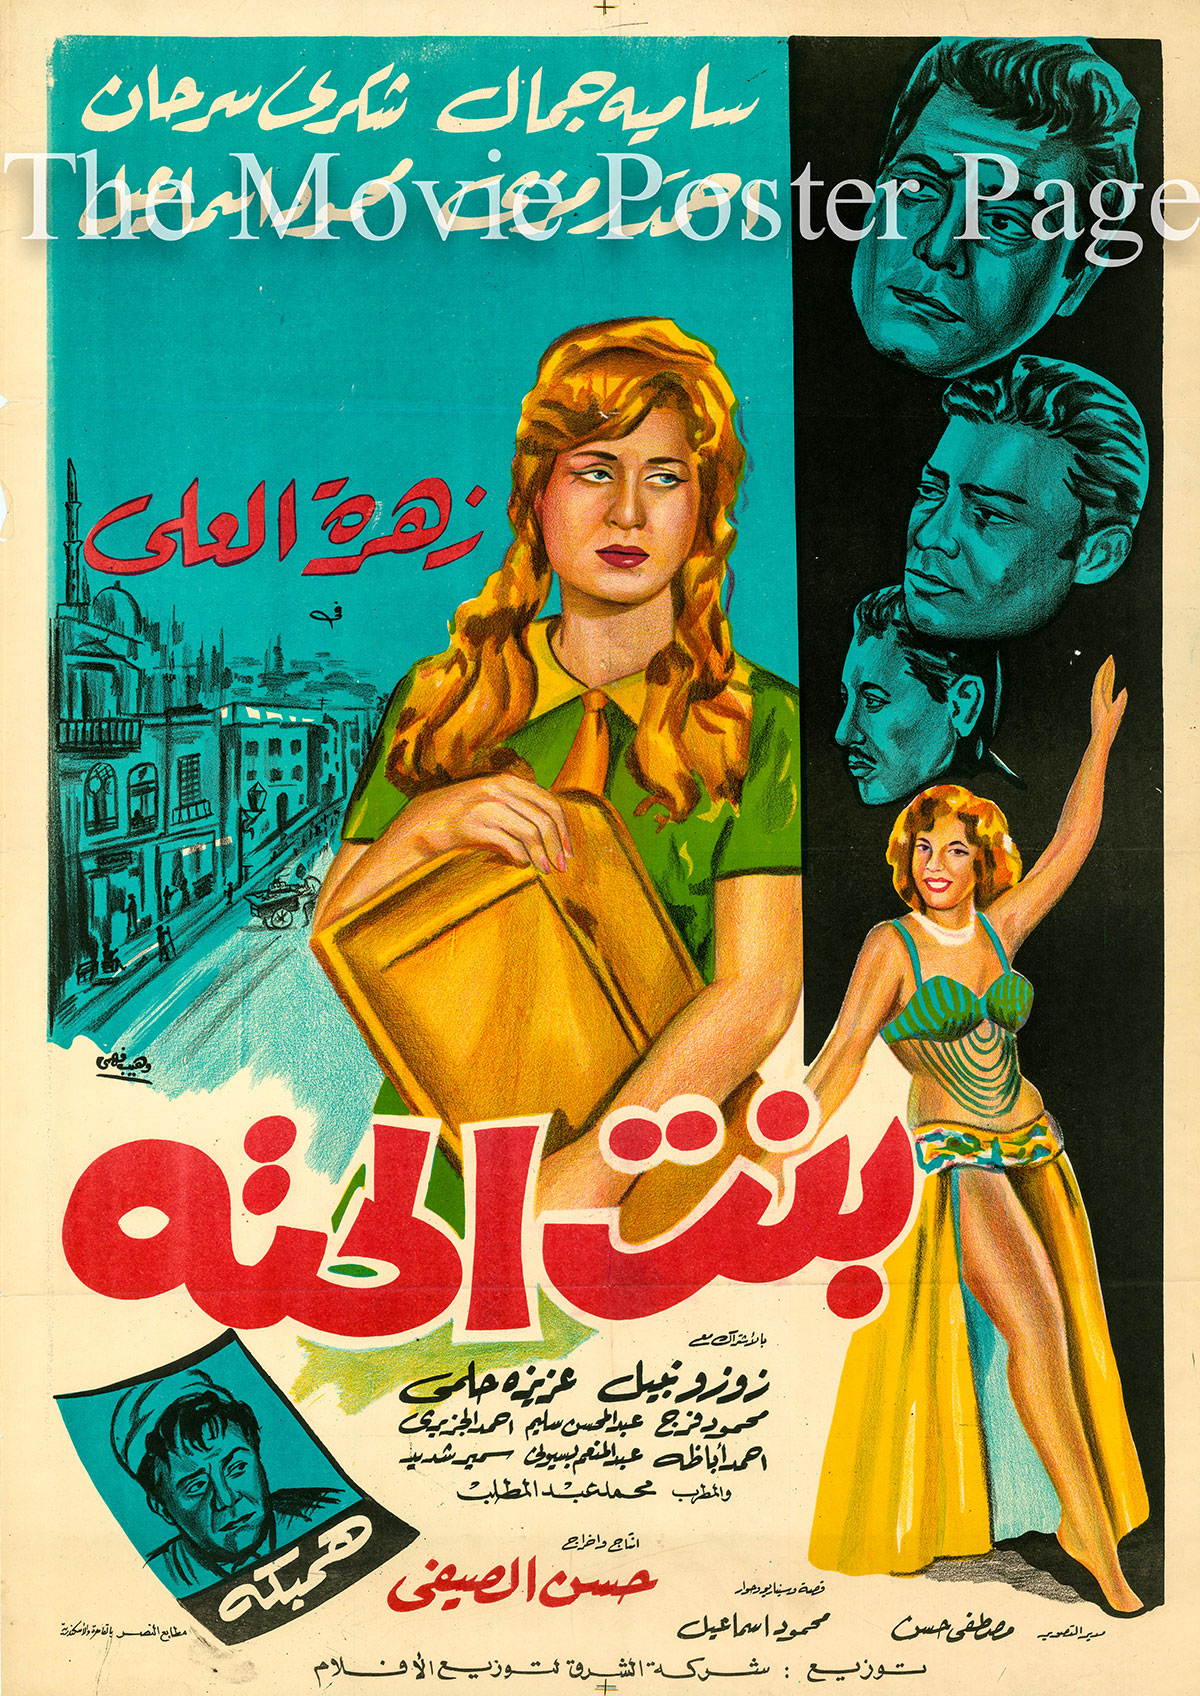 Pictured is an Egyptian promotional poster for the 1946 Hassan El-Seify film Neighborhood girl, starring Zahrat El-Ola.